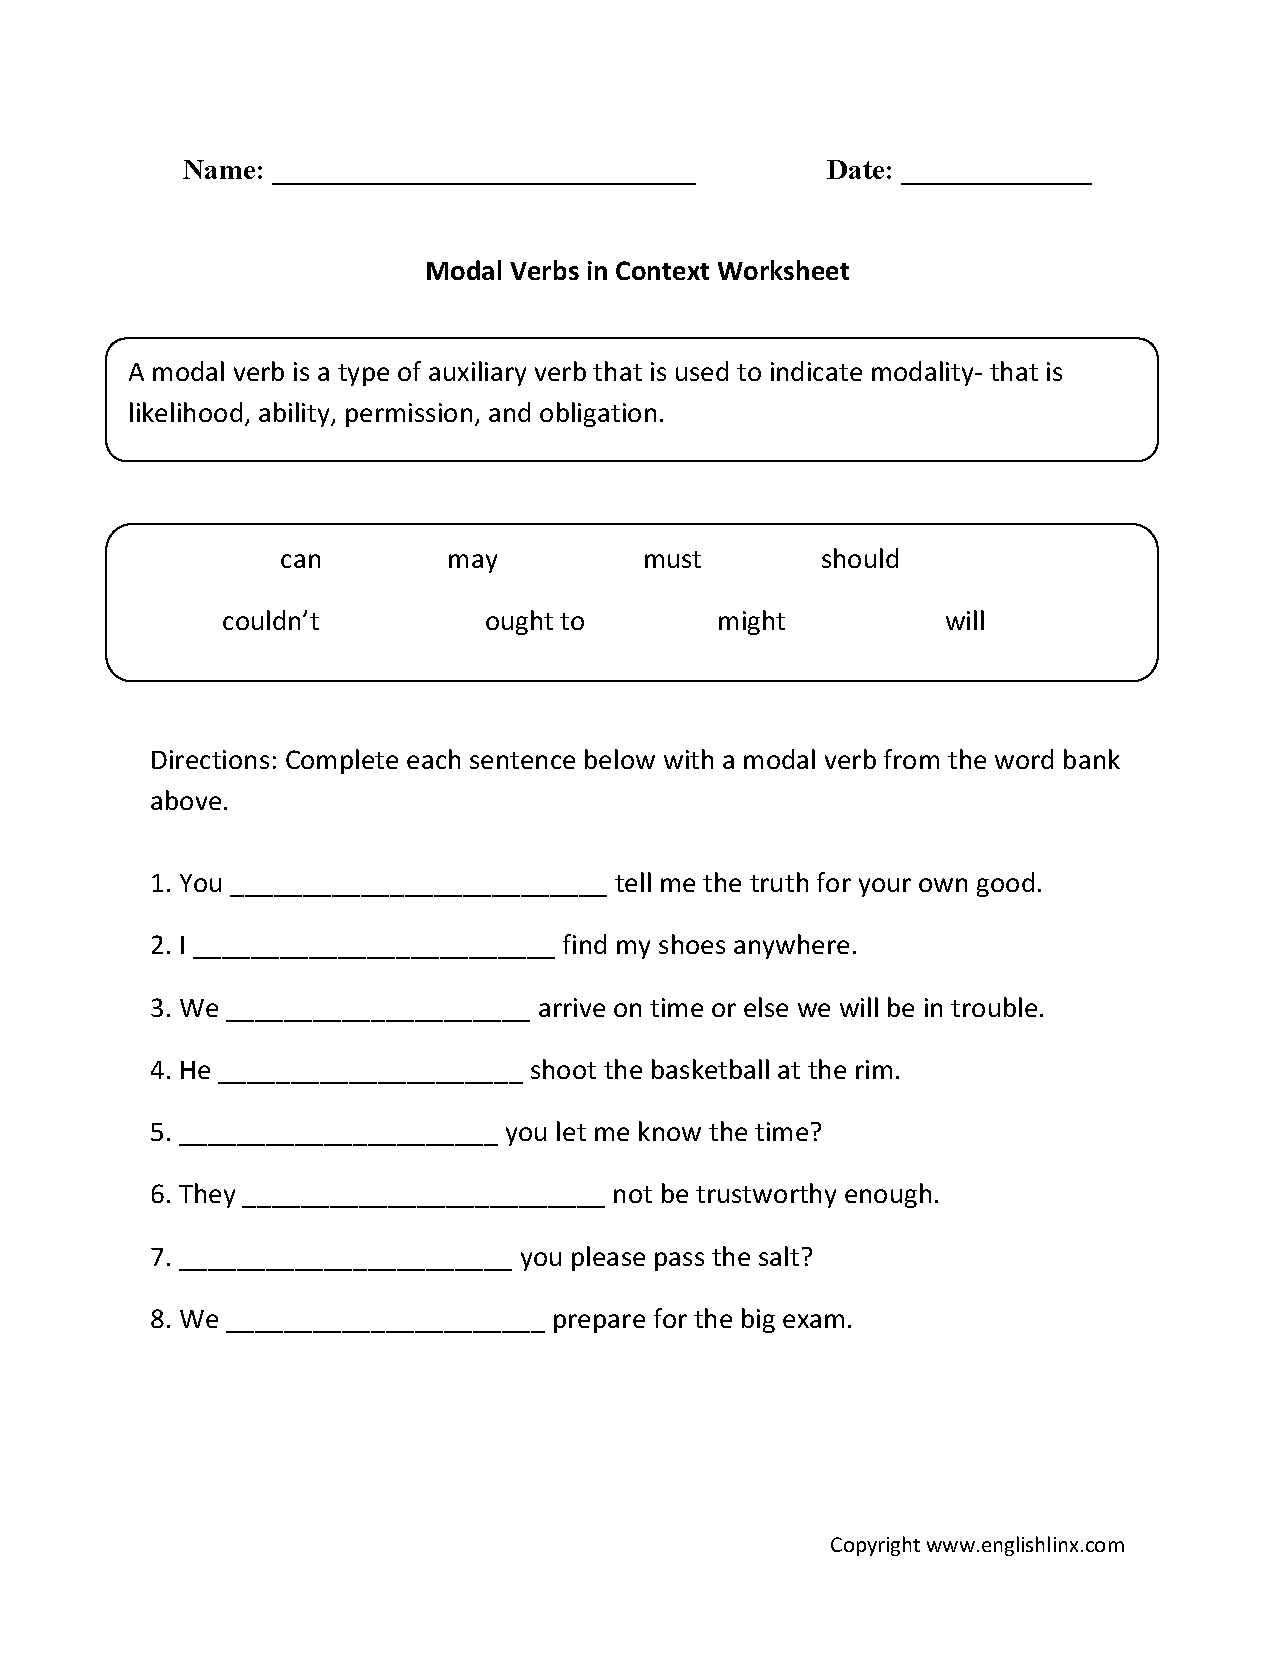 Aldiablosus  Winning Worksheet For Verbs  Coffemix With Great Englishlinxcom  Verbs Worksheets With Attractive Picture Analogies Worksheet Also Making An Inference Worksheet In Addition Chemistry Scientific Method Worksheet And  Times Tables Worksheet As Well As Direction Worksheets Additionally Noun Worksheets Kindergarten From Coffemixcom With Aldiablosus  Great Worksheet For Verbs  Coffemix With Attractive Englishlinxcom  Verbs Worksheets And Winning Picture Analogies Worksheet Also Making An Inference Worksheet In Addition Chemistry Scientific Method Worksheet From Coffemixcom